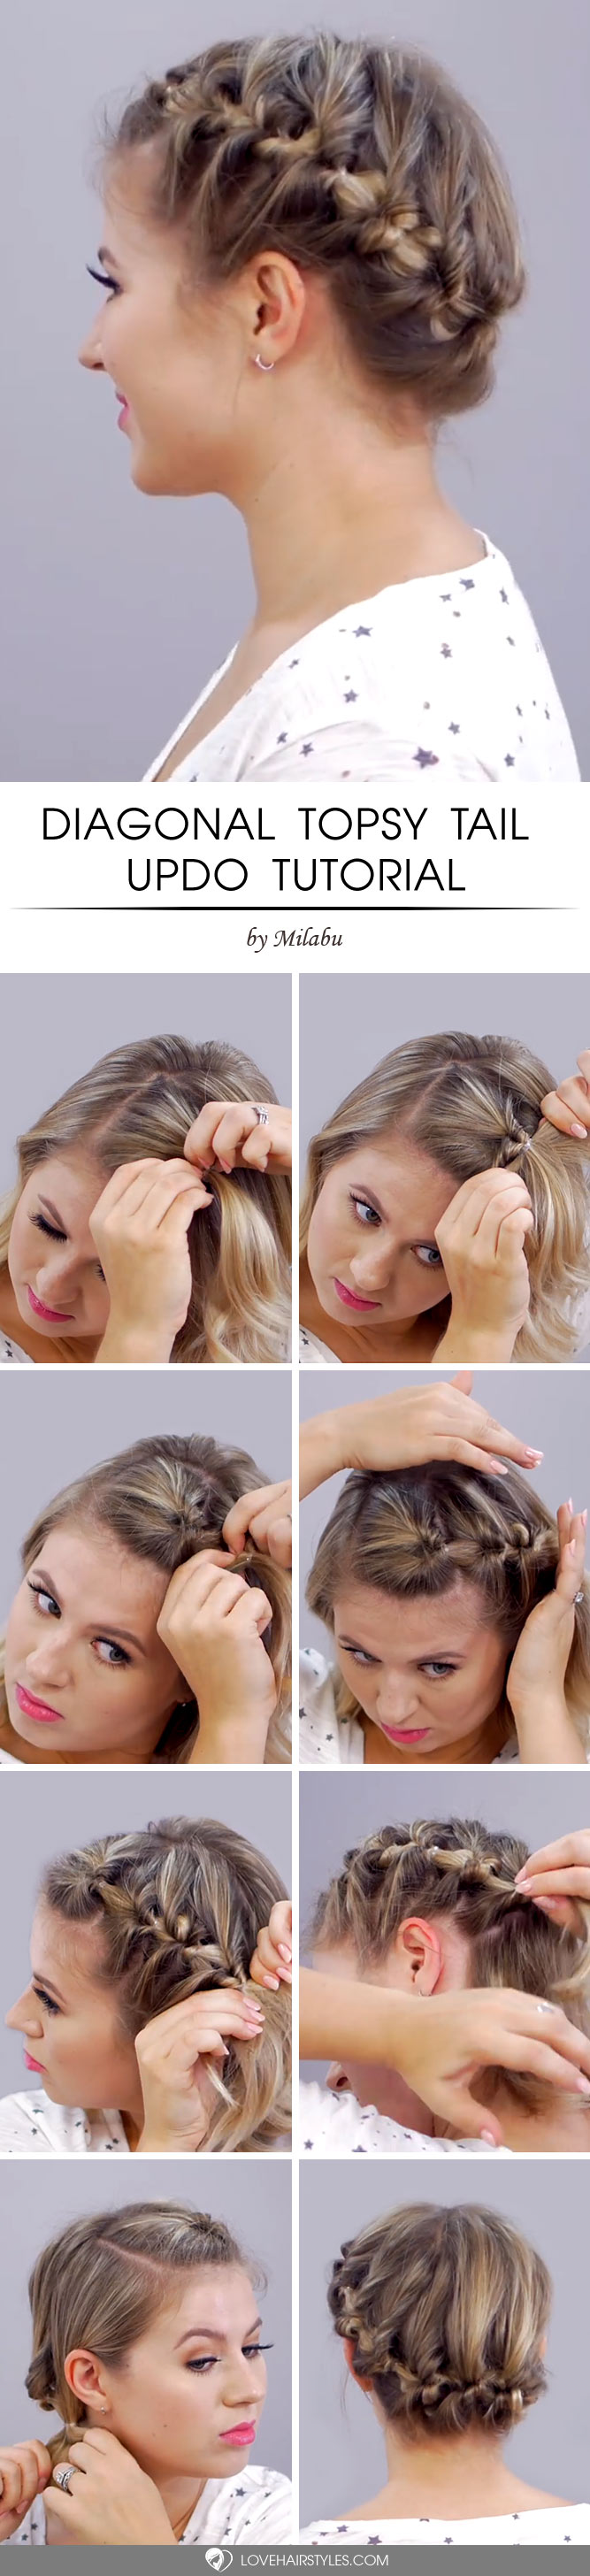 Diagonal Topsy Tail Updo #topsytail #tutorials #hairstyles #updohairstyles